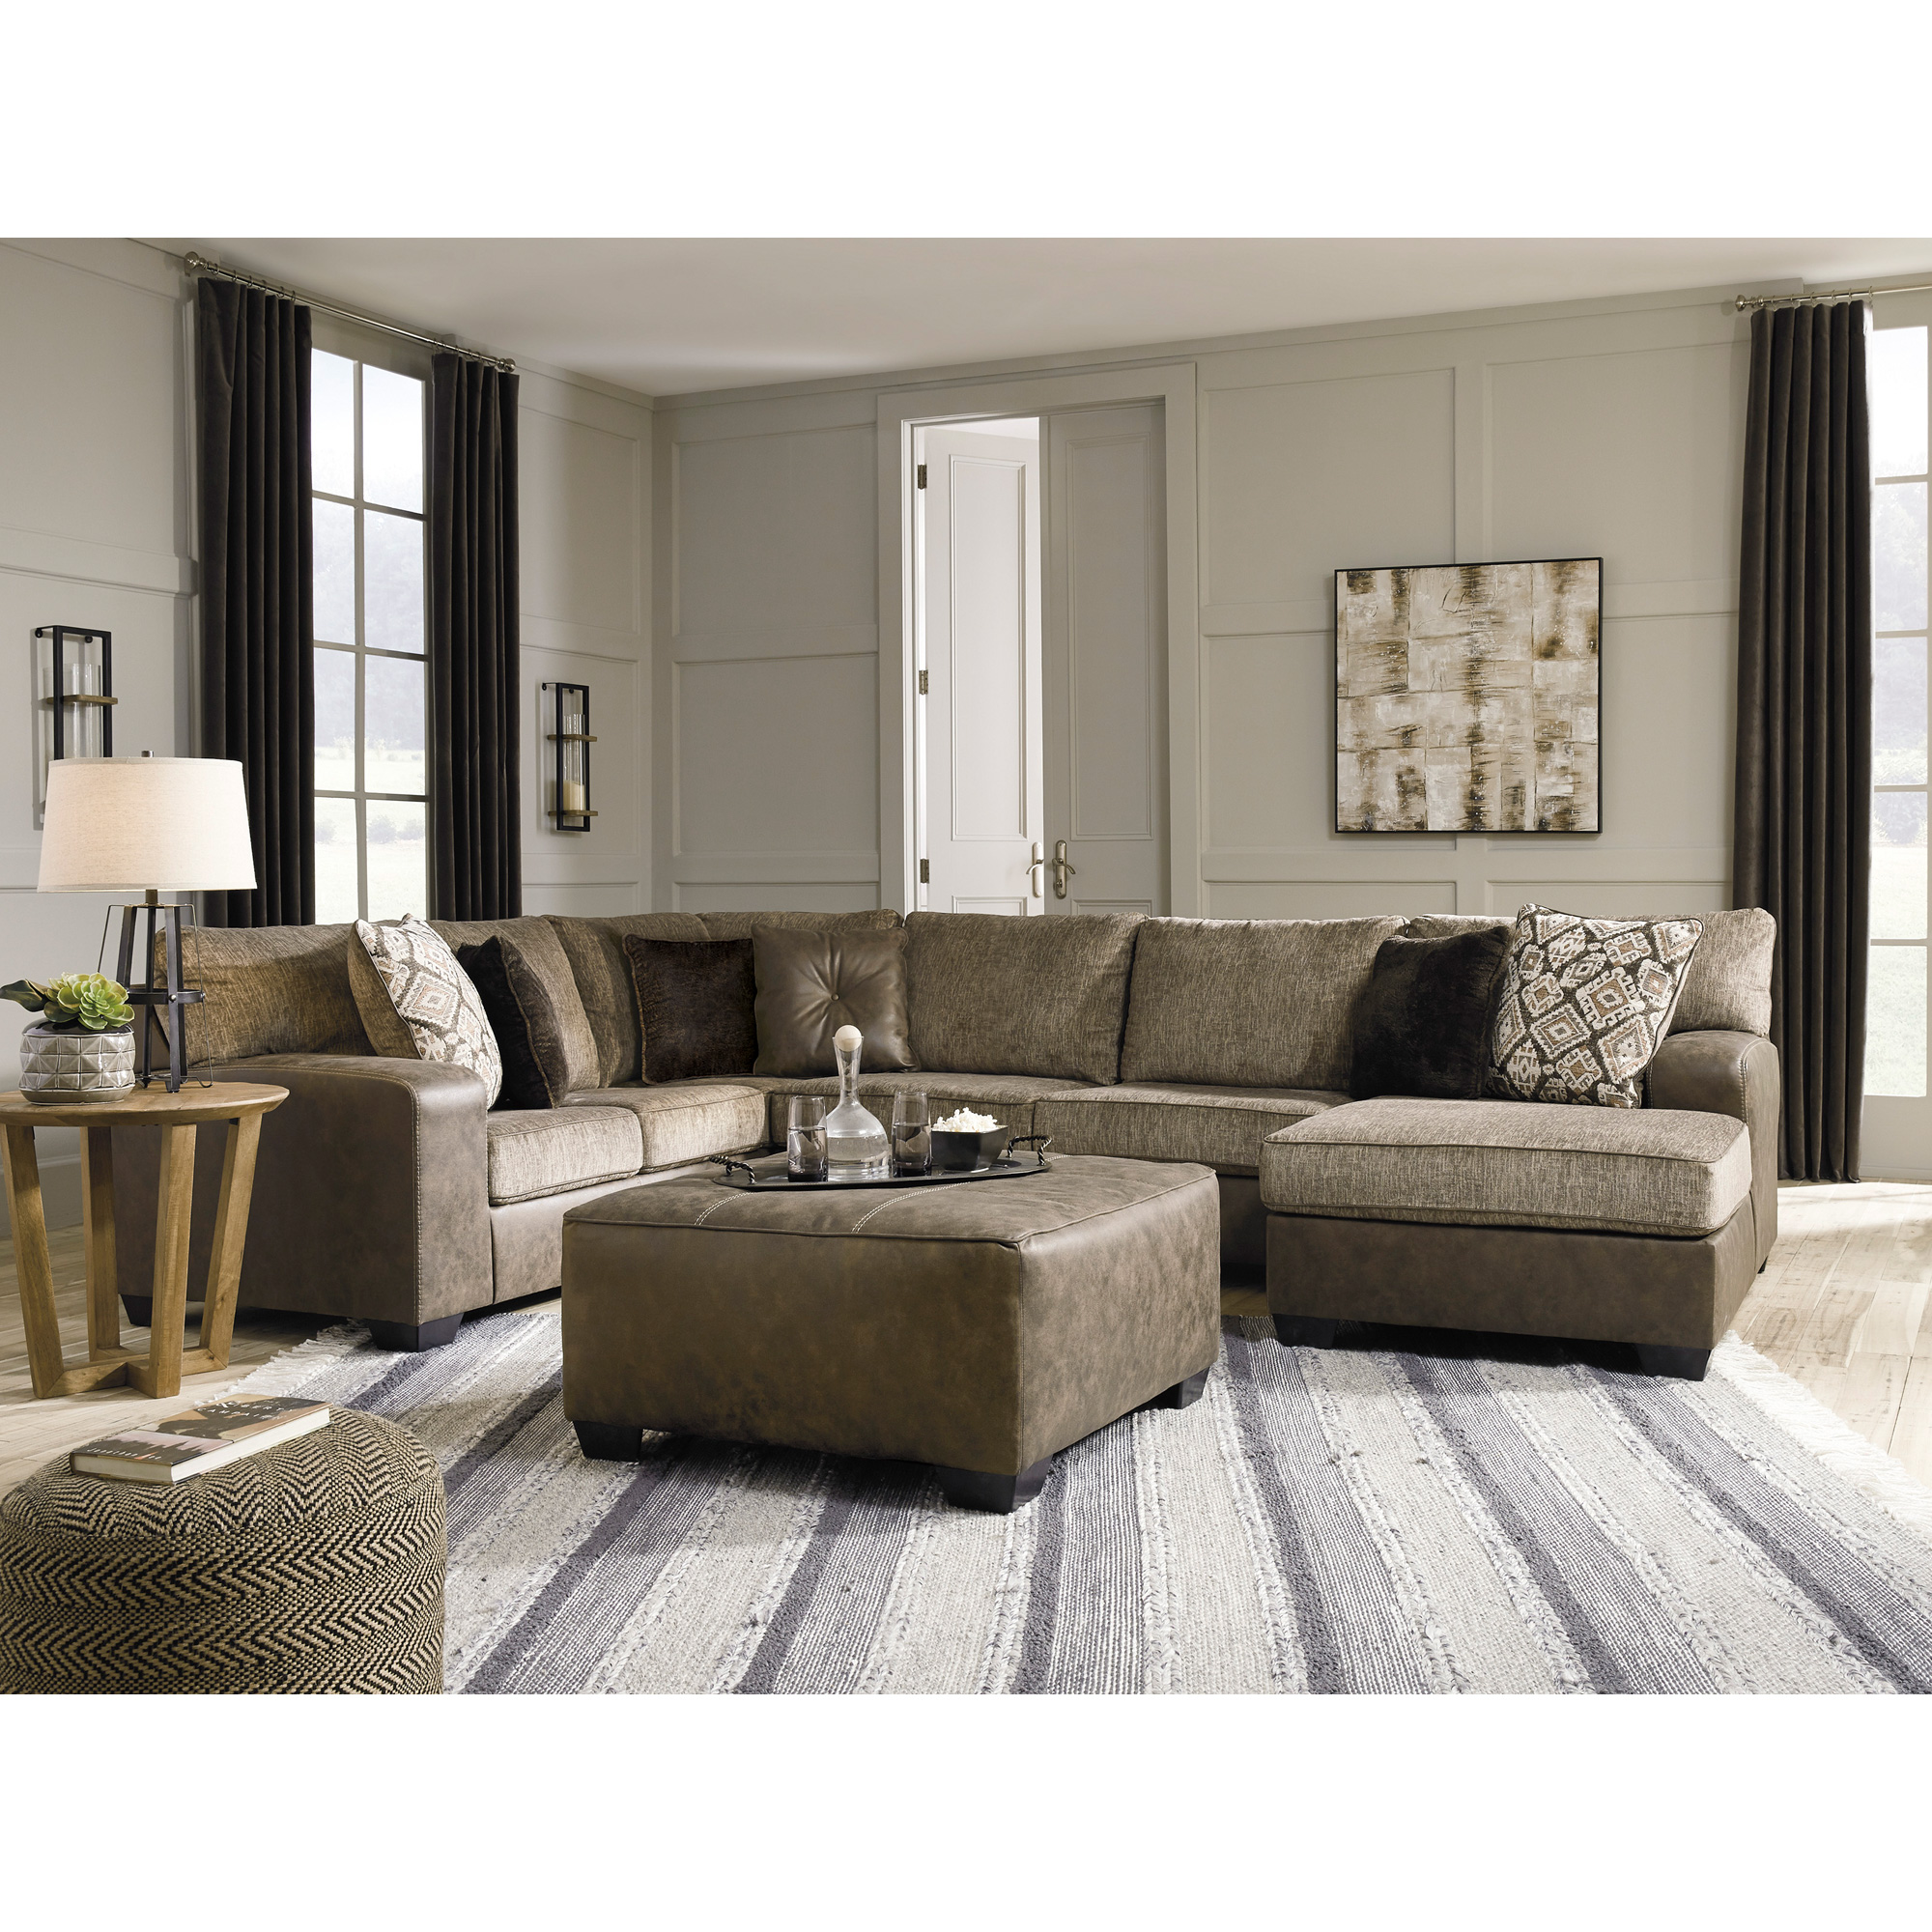 Ashley Furniture | Abalone Chocolate Right Chaise Sectional Sofa